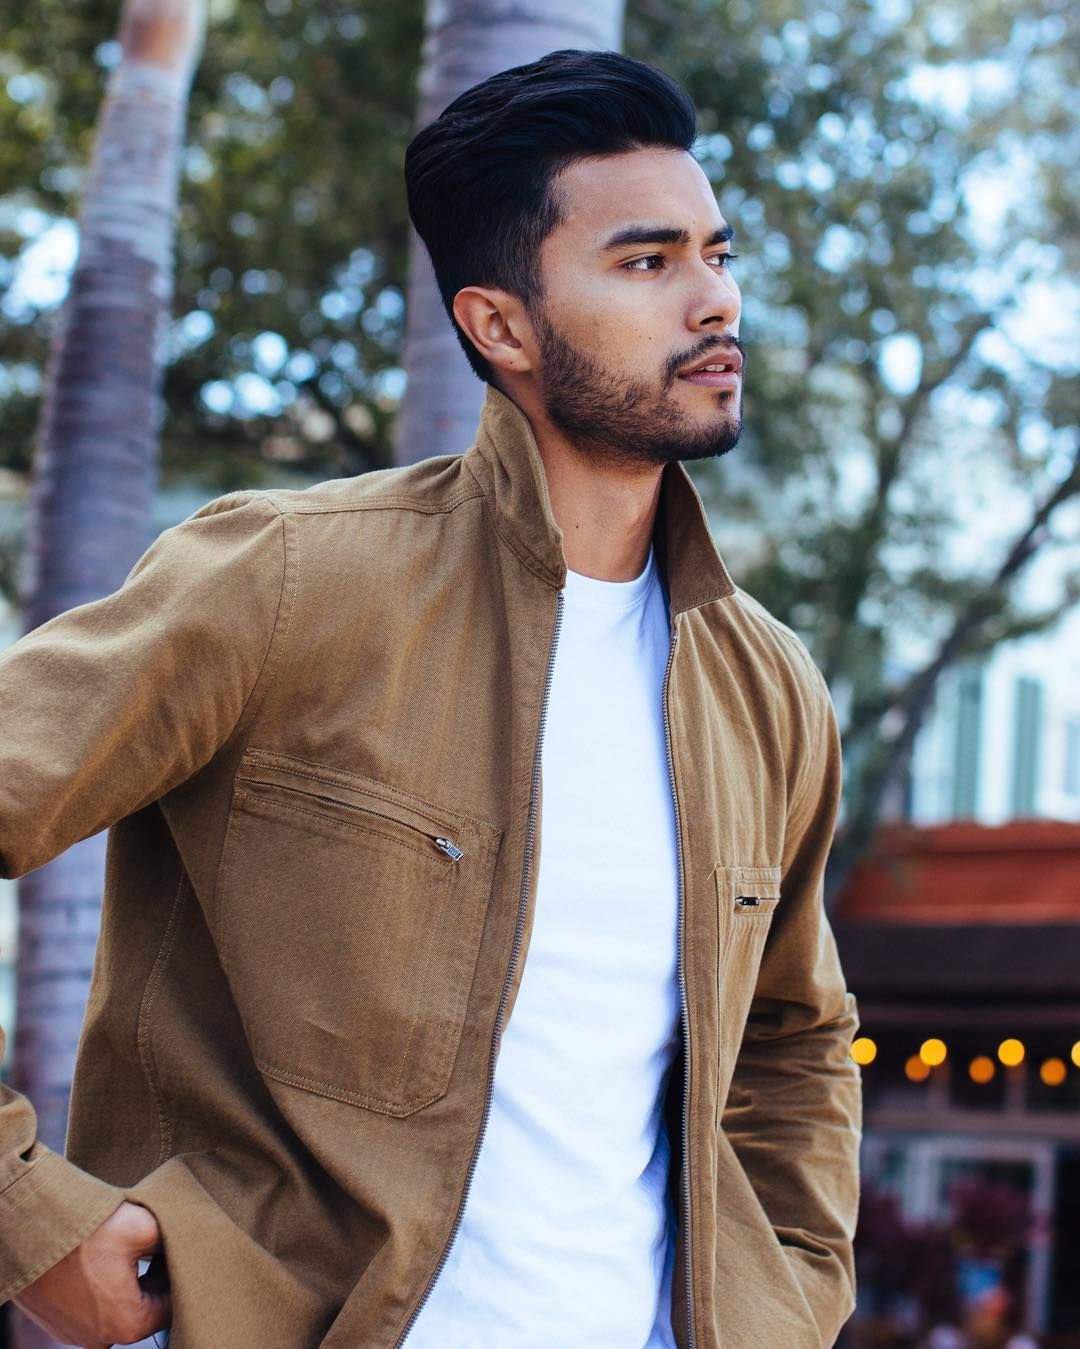 Jose Zuniga On Instagram Hey Guys New Video Just Dropped Click The Link In The Bio To Go Watch Teaching Mens Fashion Mens Outfits Youtube Fashion [ 1349 x 1080 Pixel ]